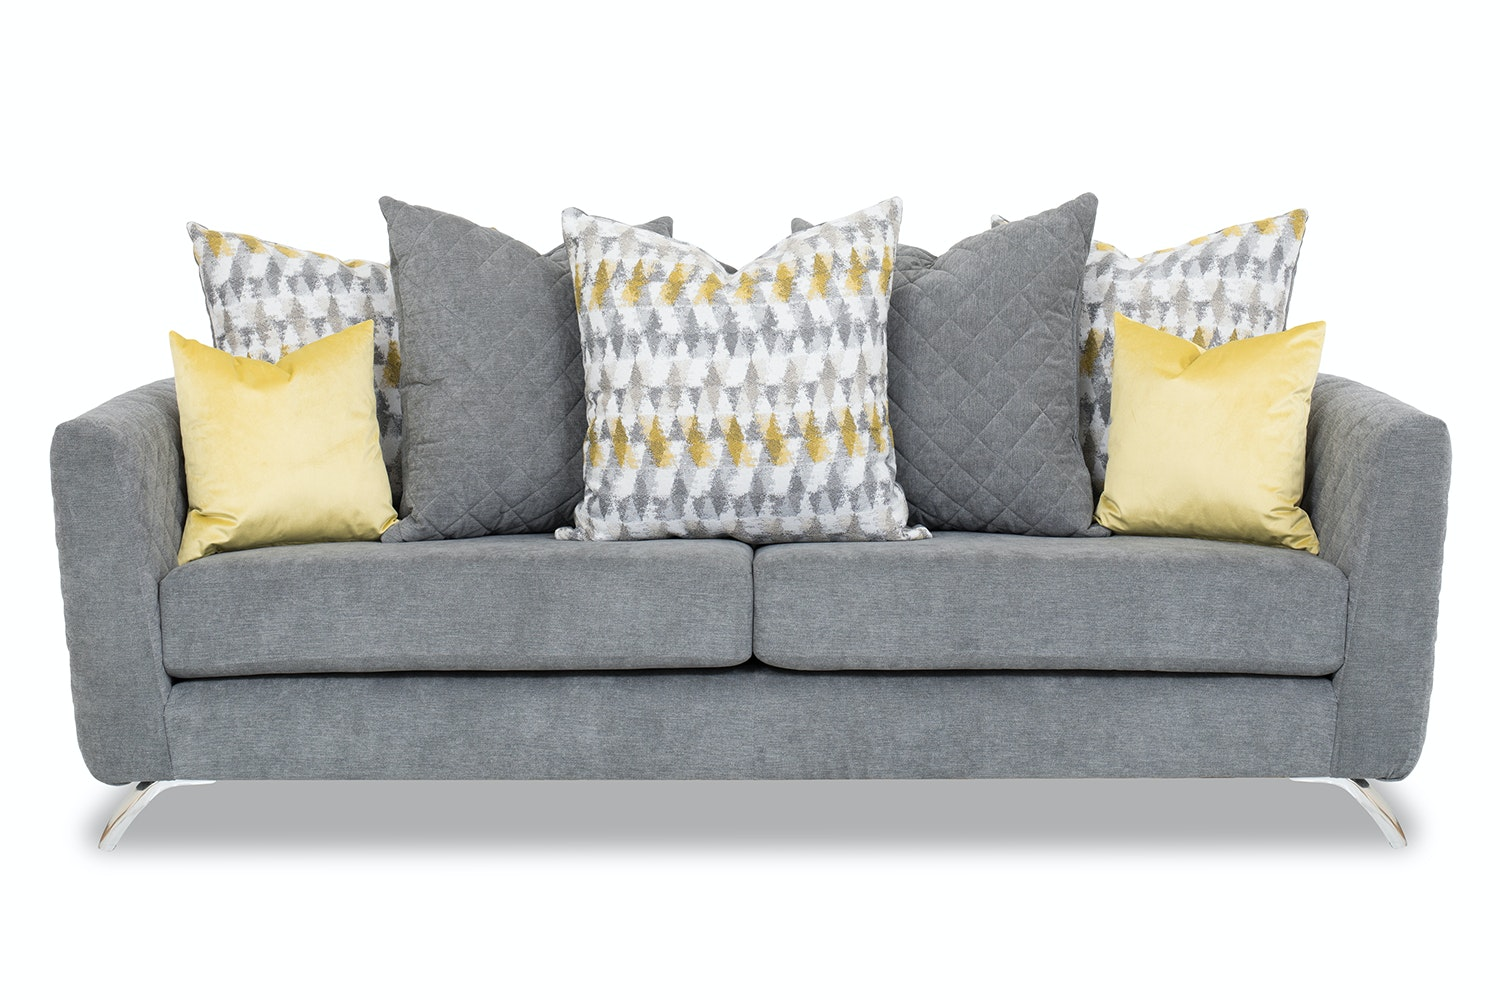 Lara 3 Seater Sofa | Pillow Back